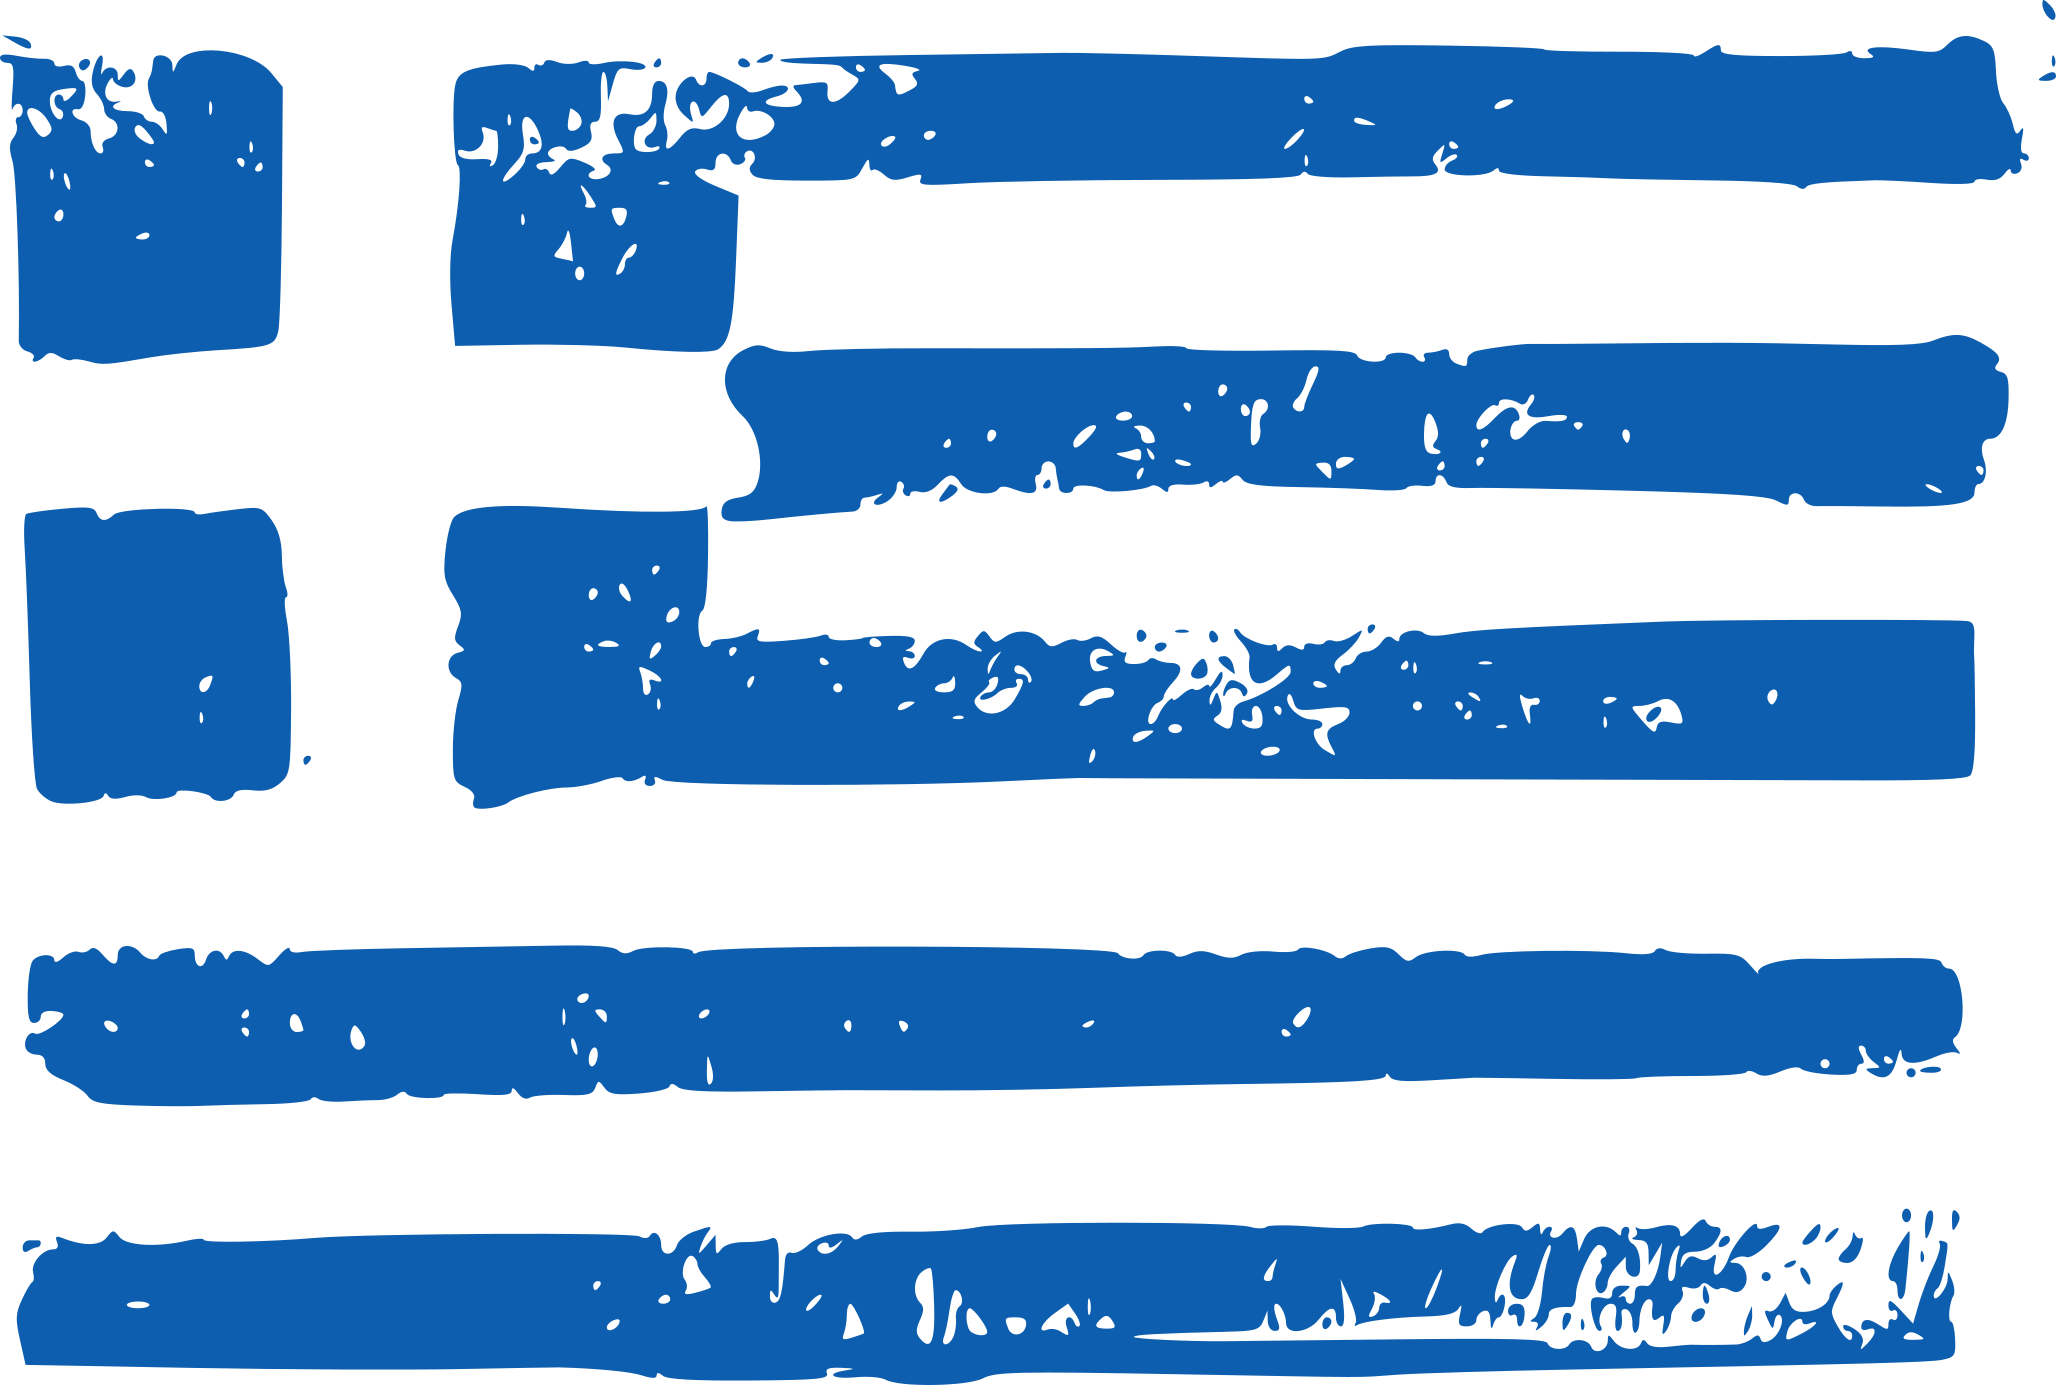 grunge-flag-of-greece-3.png